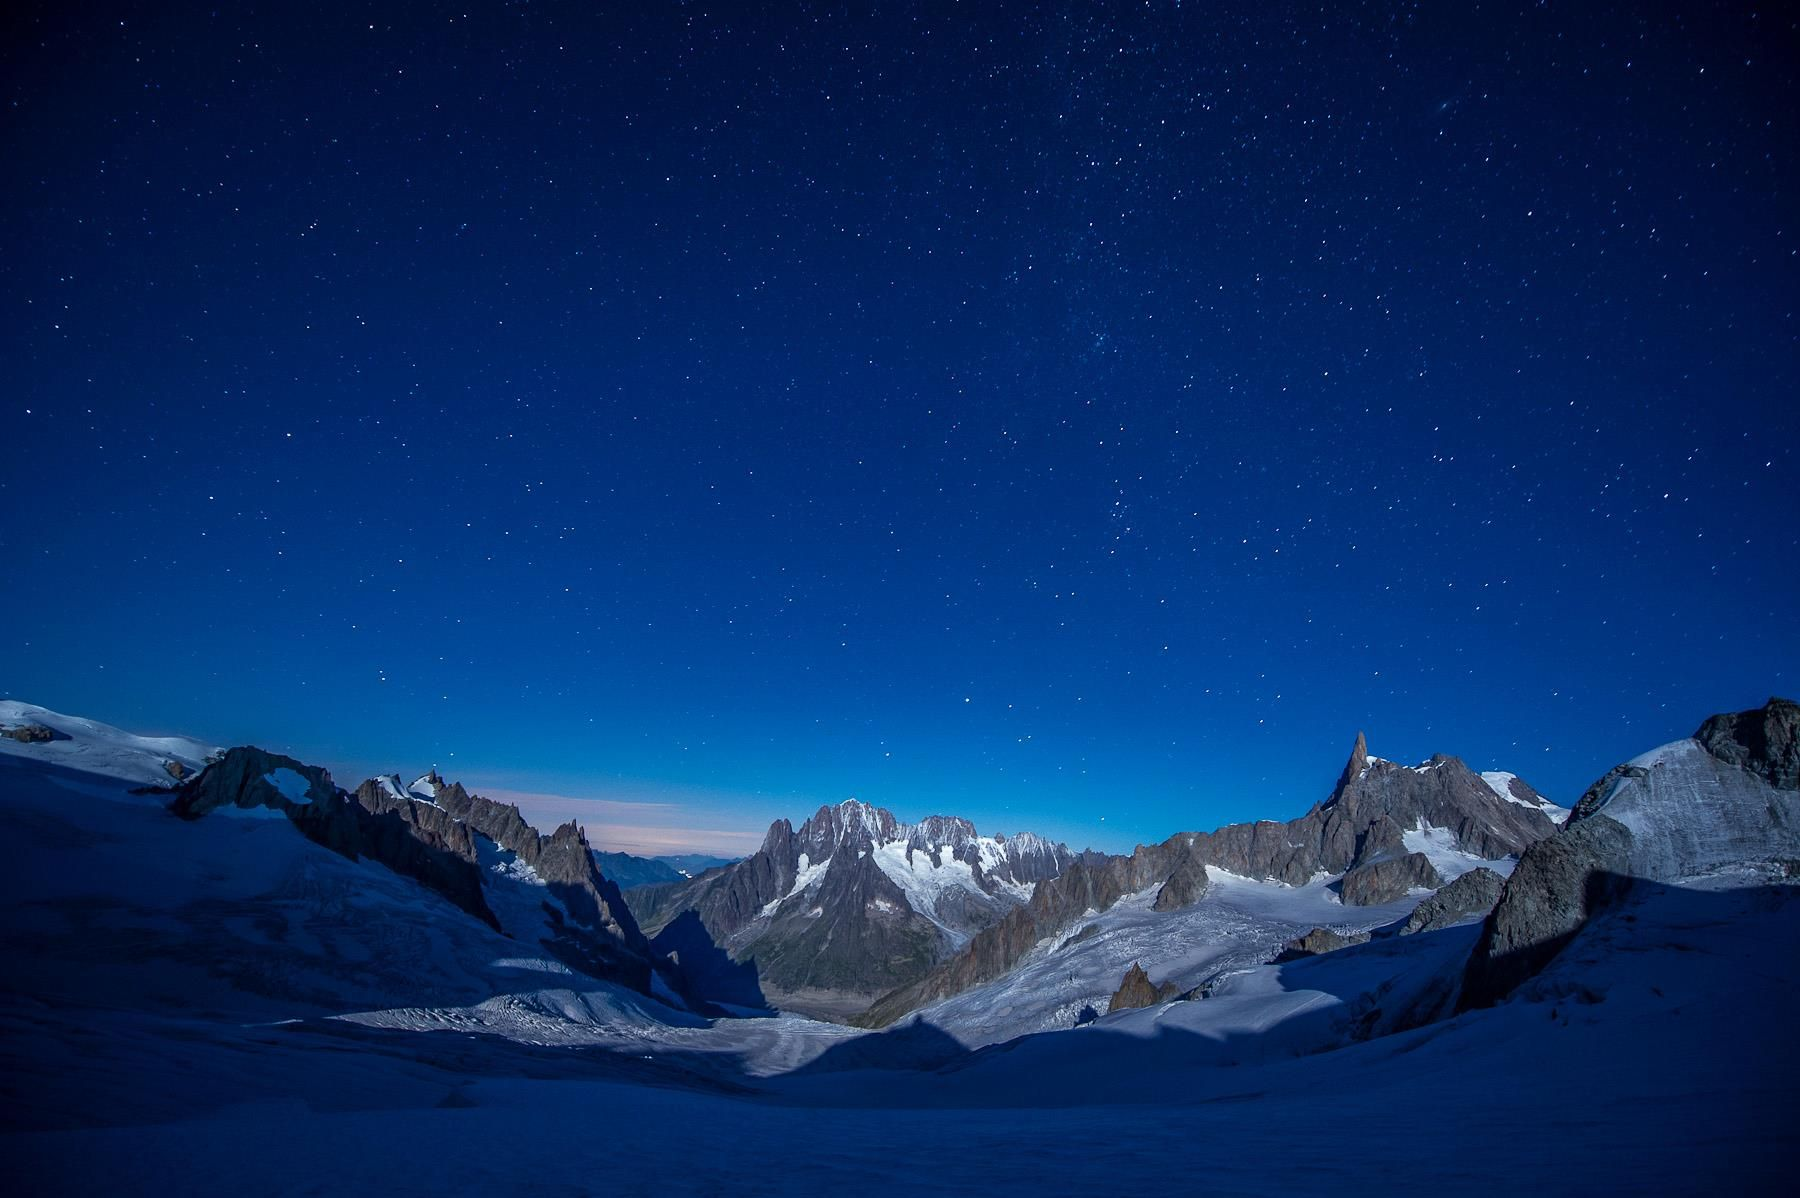 If you happen to be on the Italian side of Mont Blanc Massif, look back and enjoy the spectacular interplay of moon light and shadows. On the photograph, the eastern summits of Mont Blanc Massif with iconic Deant du Geant on the right. Photo taken during last assignment in Chamonix.